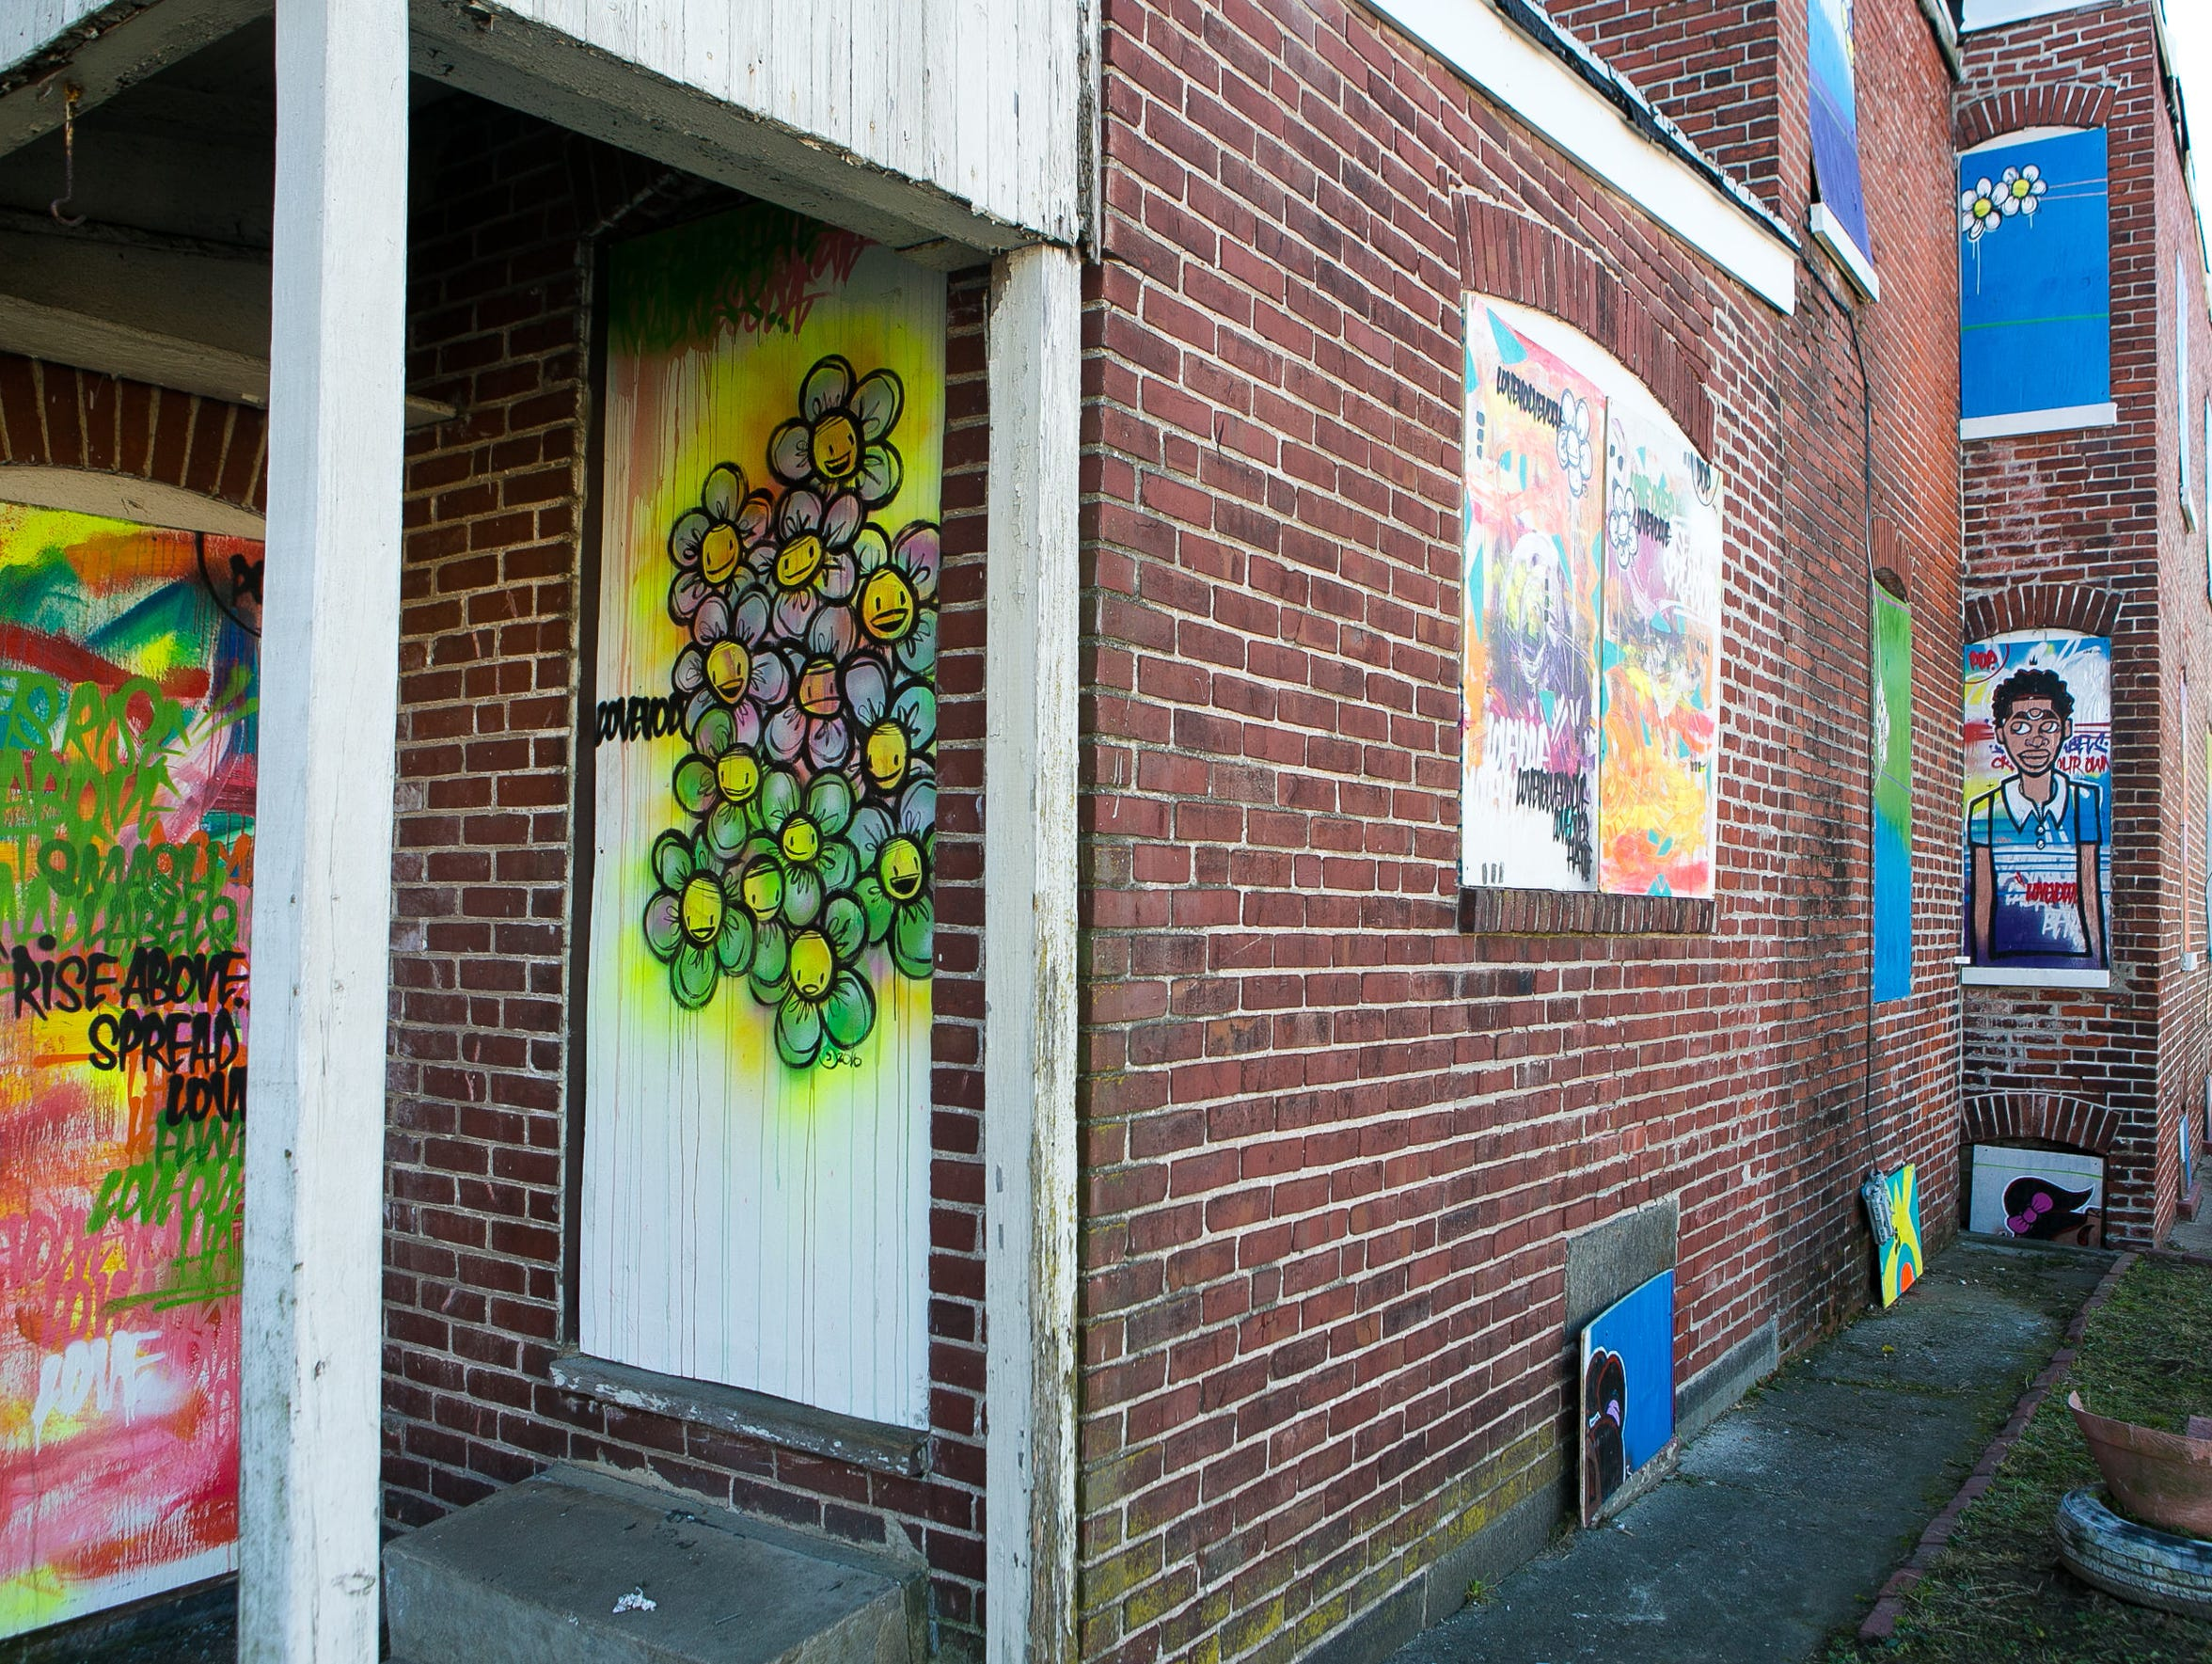 Community art brightens up a vacant home in the Southbridge area.